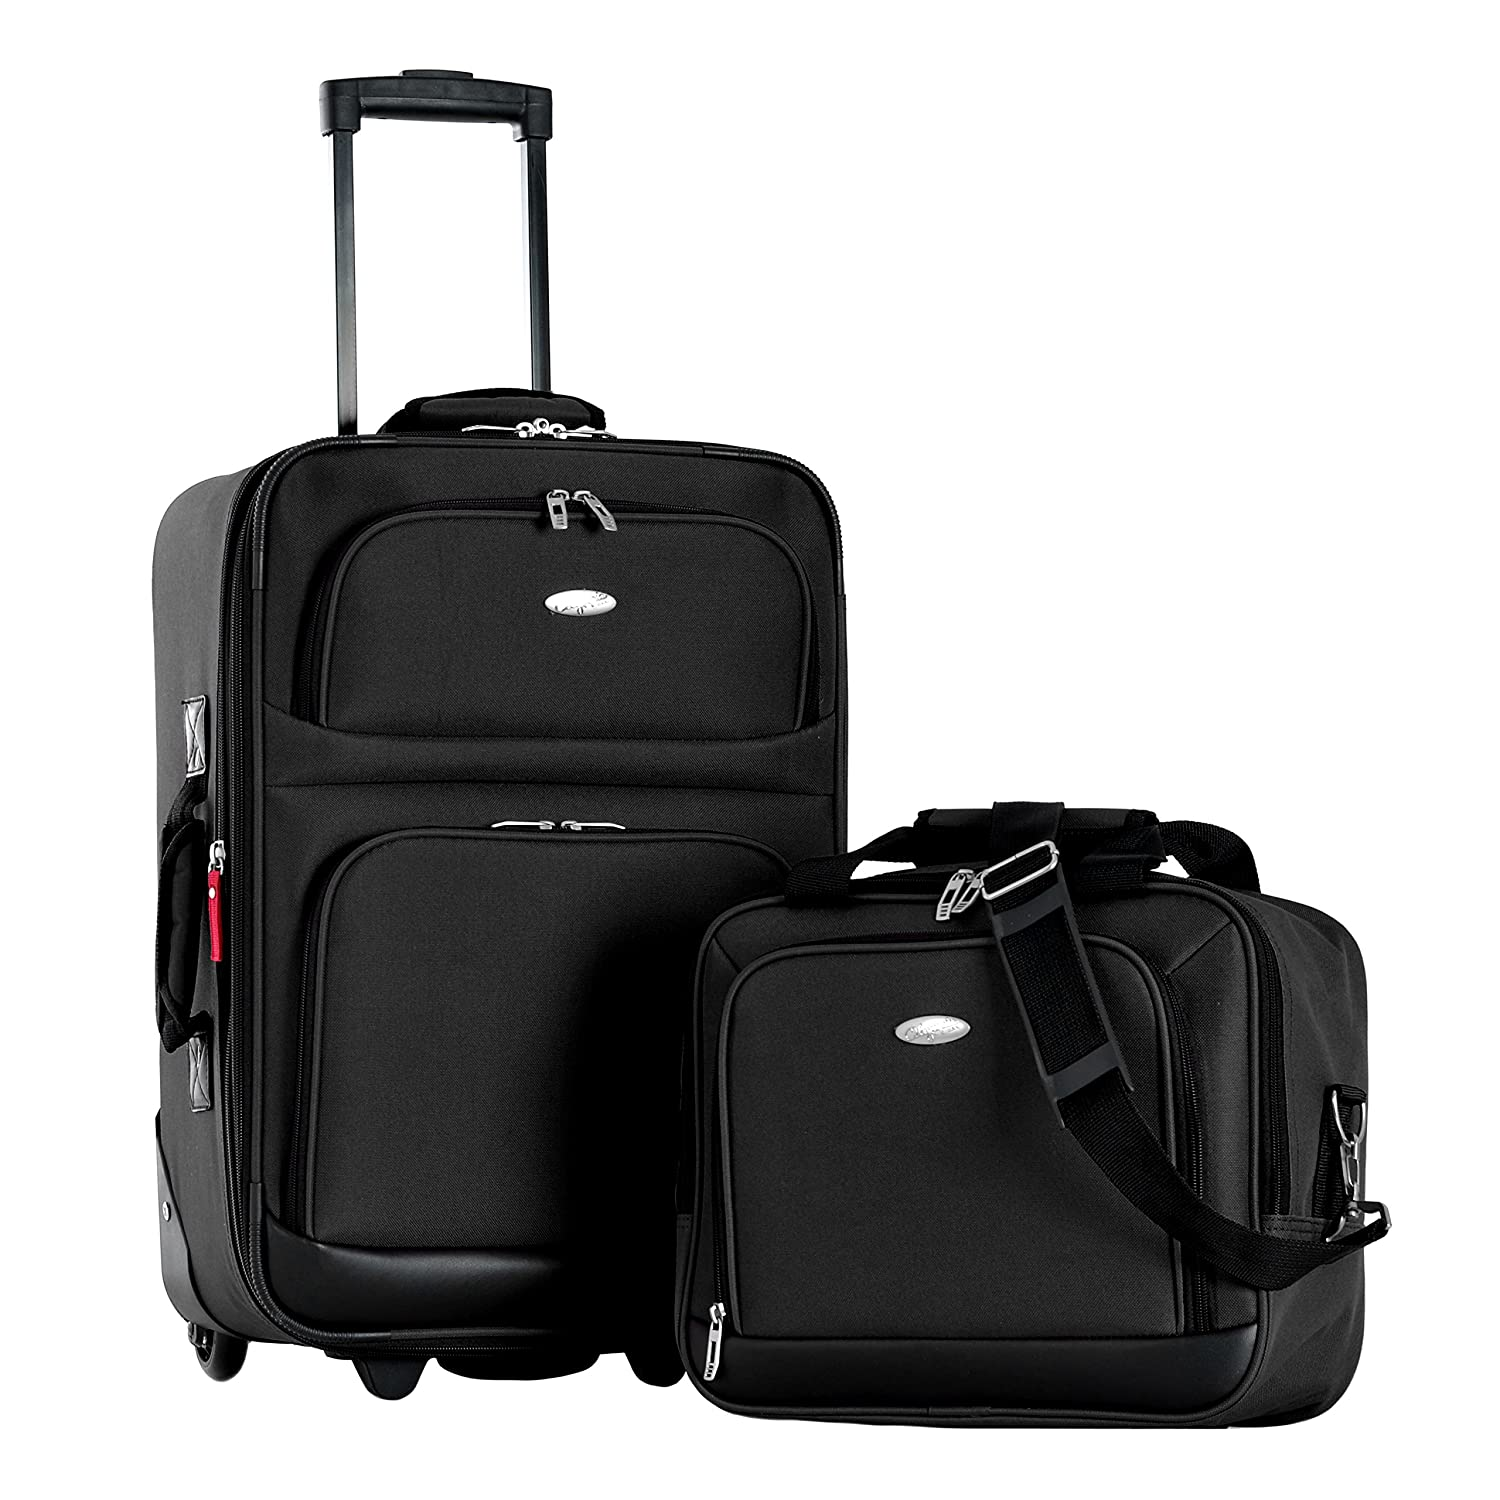 Amazon.com | Olympia Let's Travel 2 Piece Carry-On Luggage Set ...